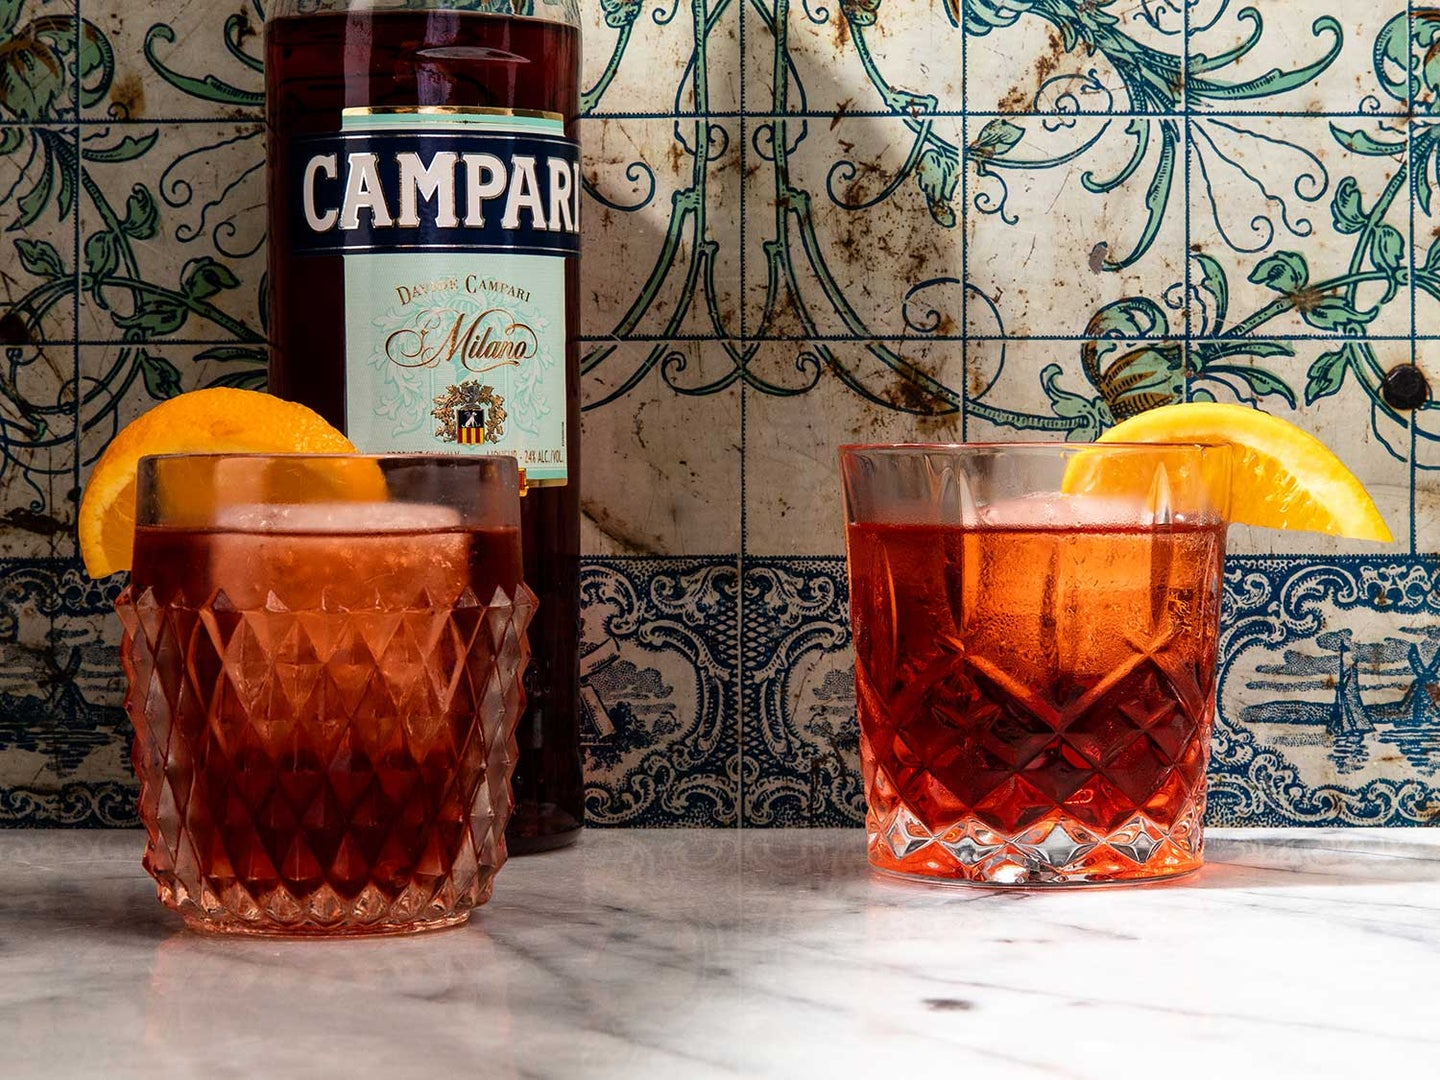 The Negroni is a bartender's favorite plaything, with ingredients swapped for everything from mezcal to sherry. Try replacing the gin with sparkling wine for a